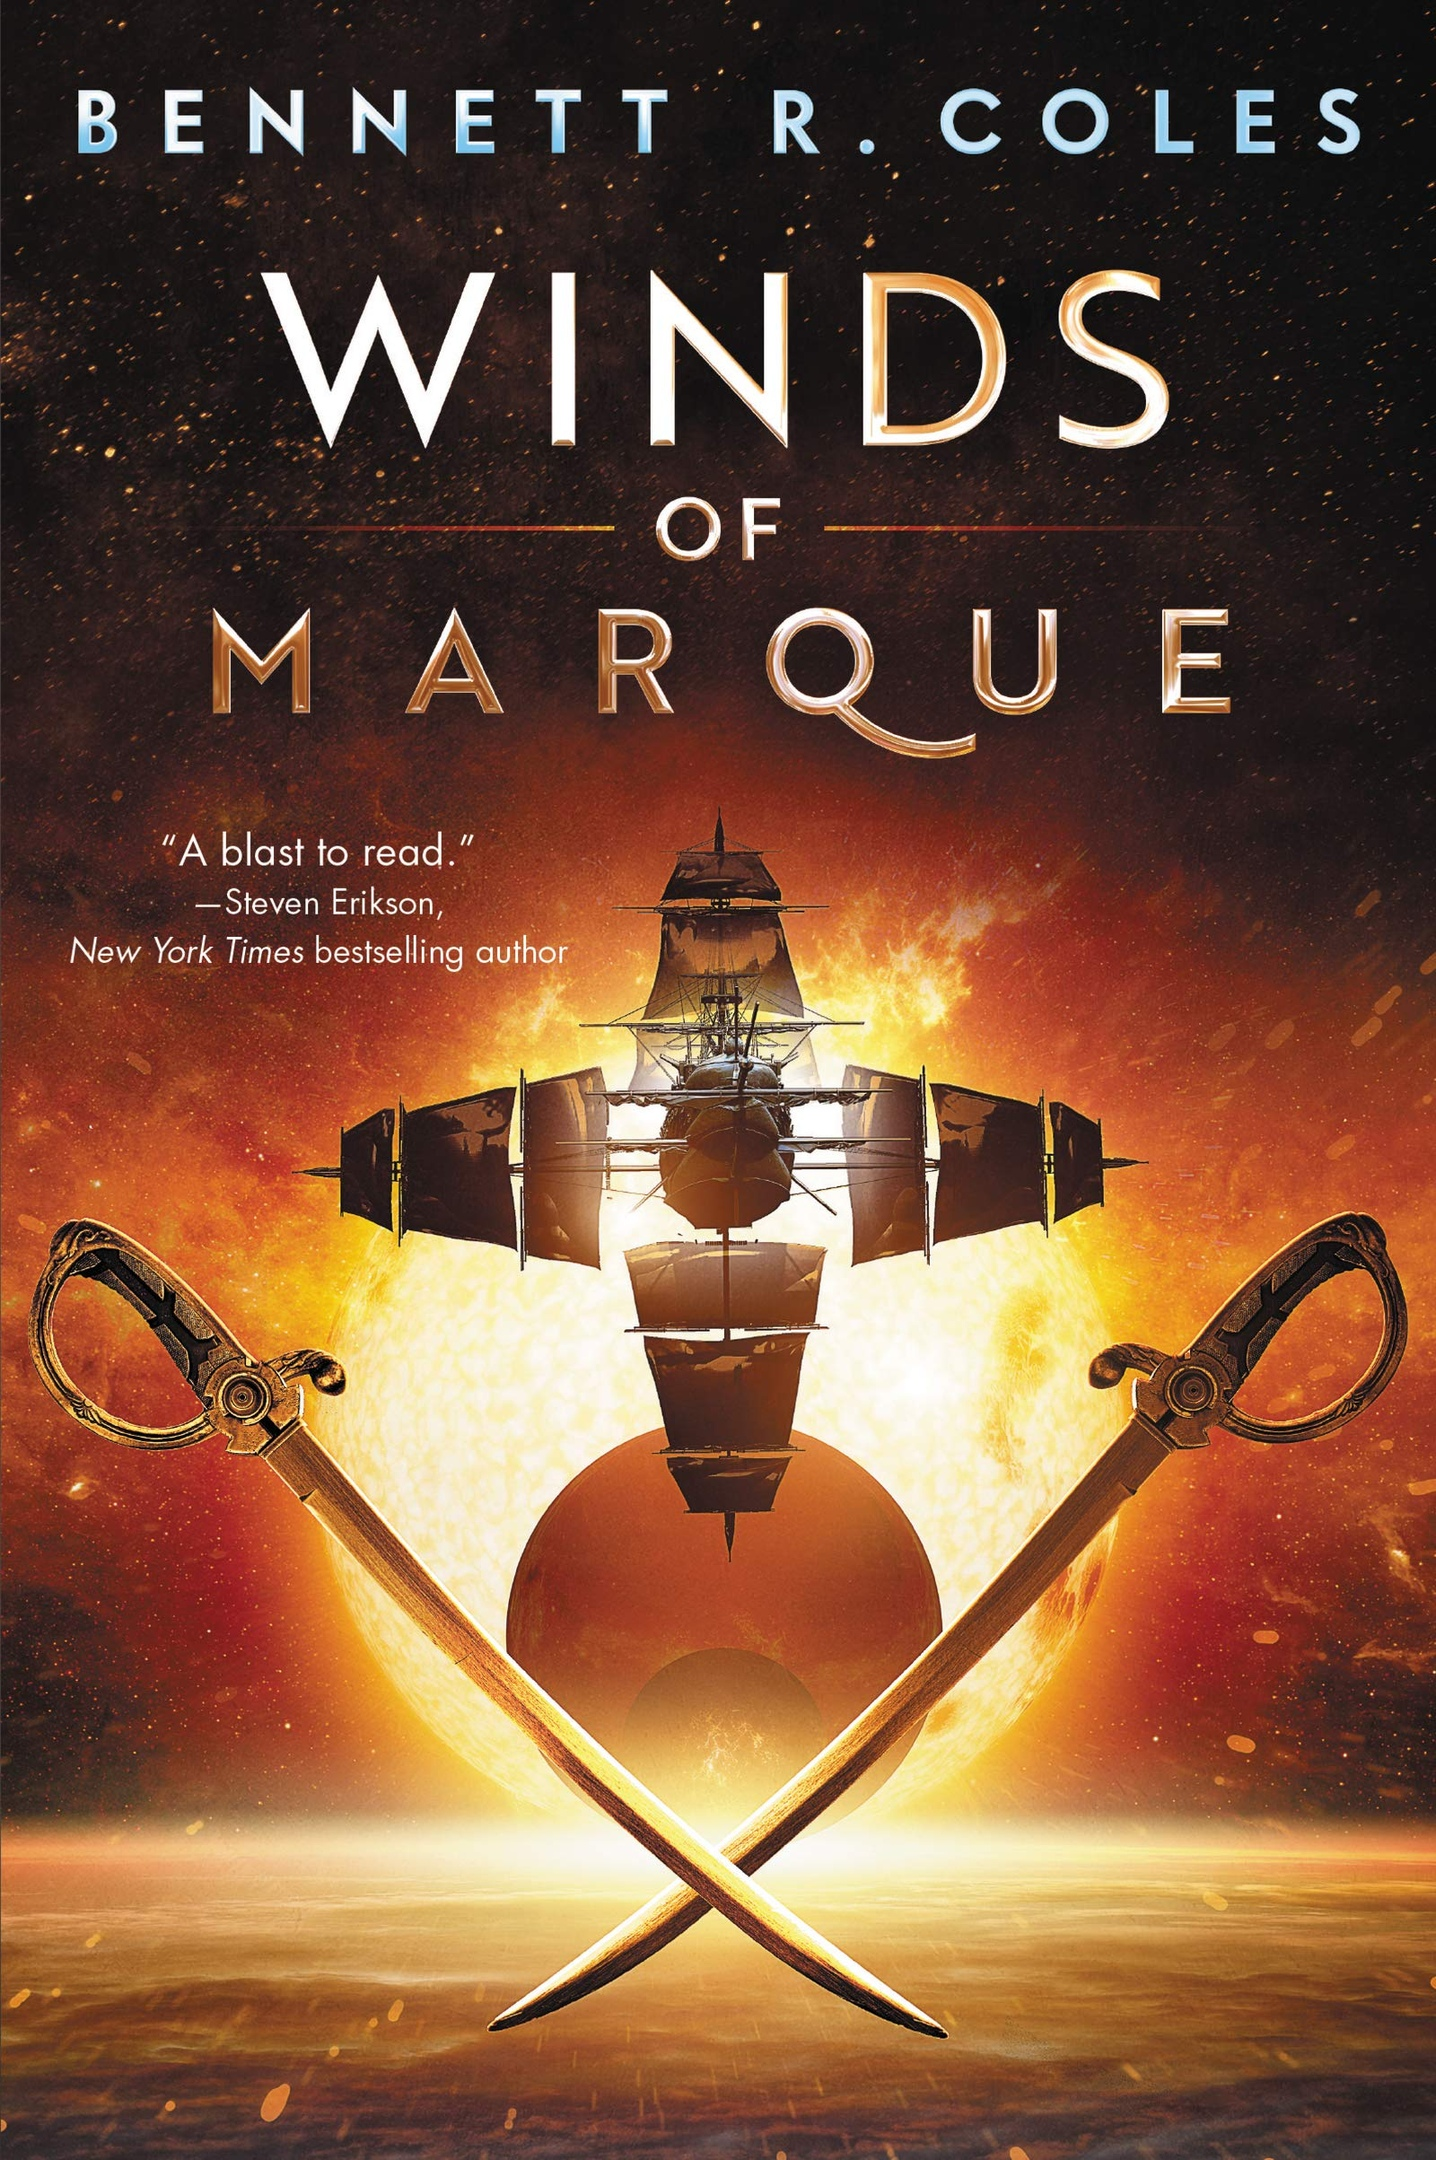 Bennett R. Coles – Winds Of Marque